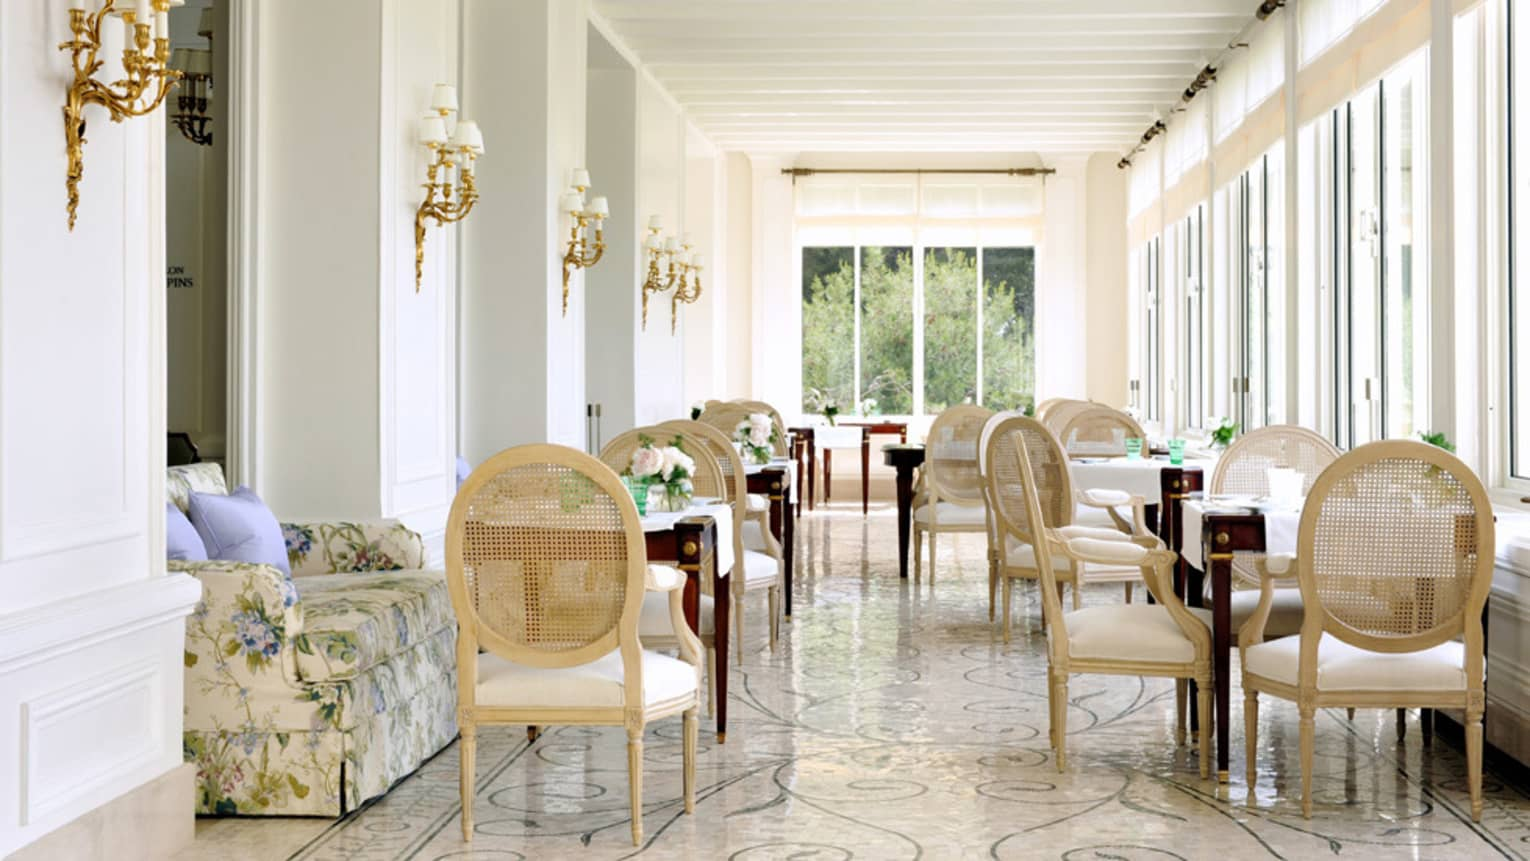 Le Veranda dining chairs around tables in restaurant sunroom